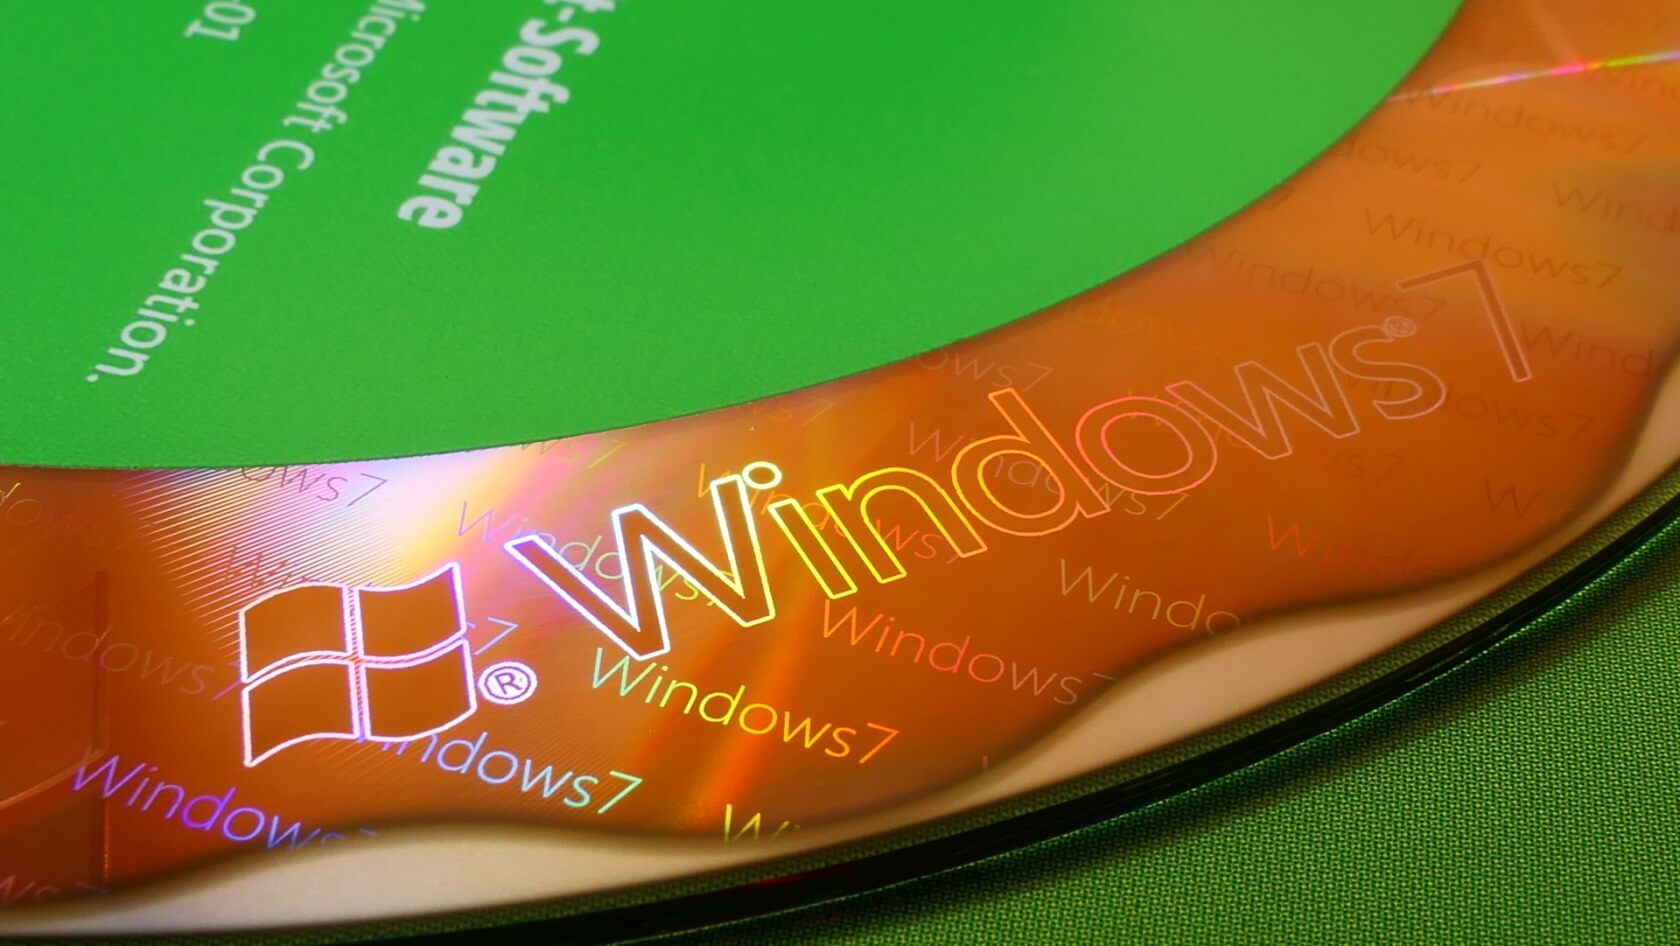 At least 100 million PCs still run Windows 7, one year after support ended